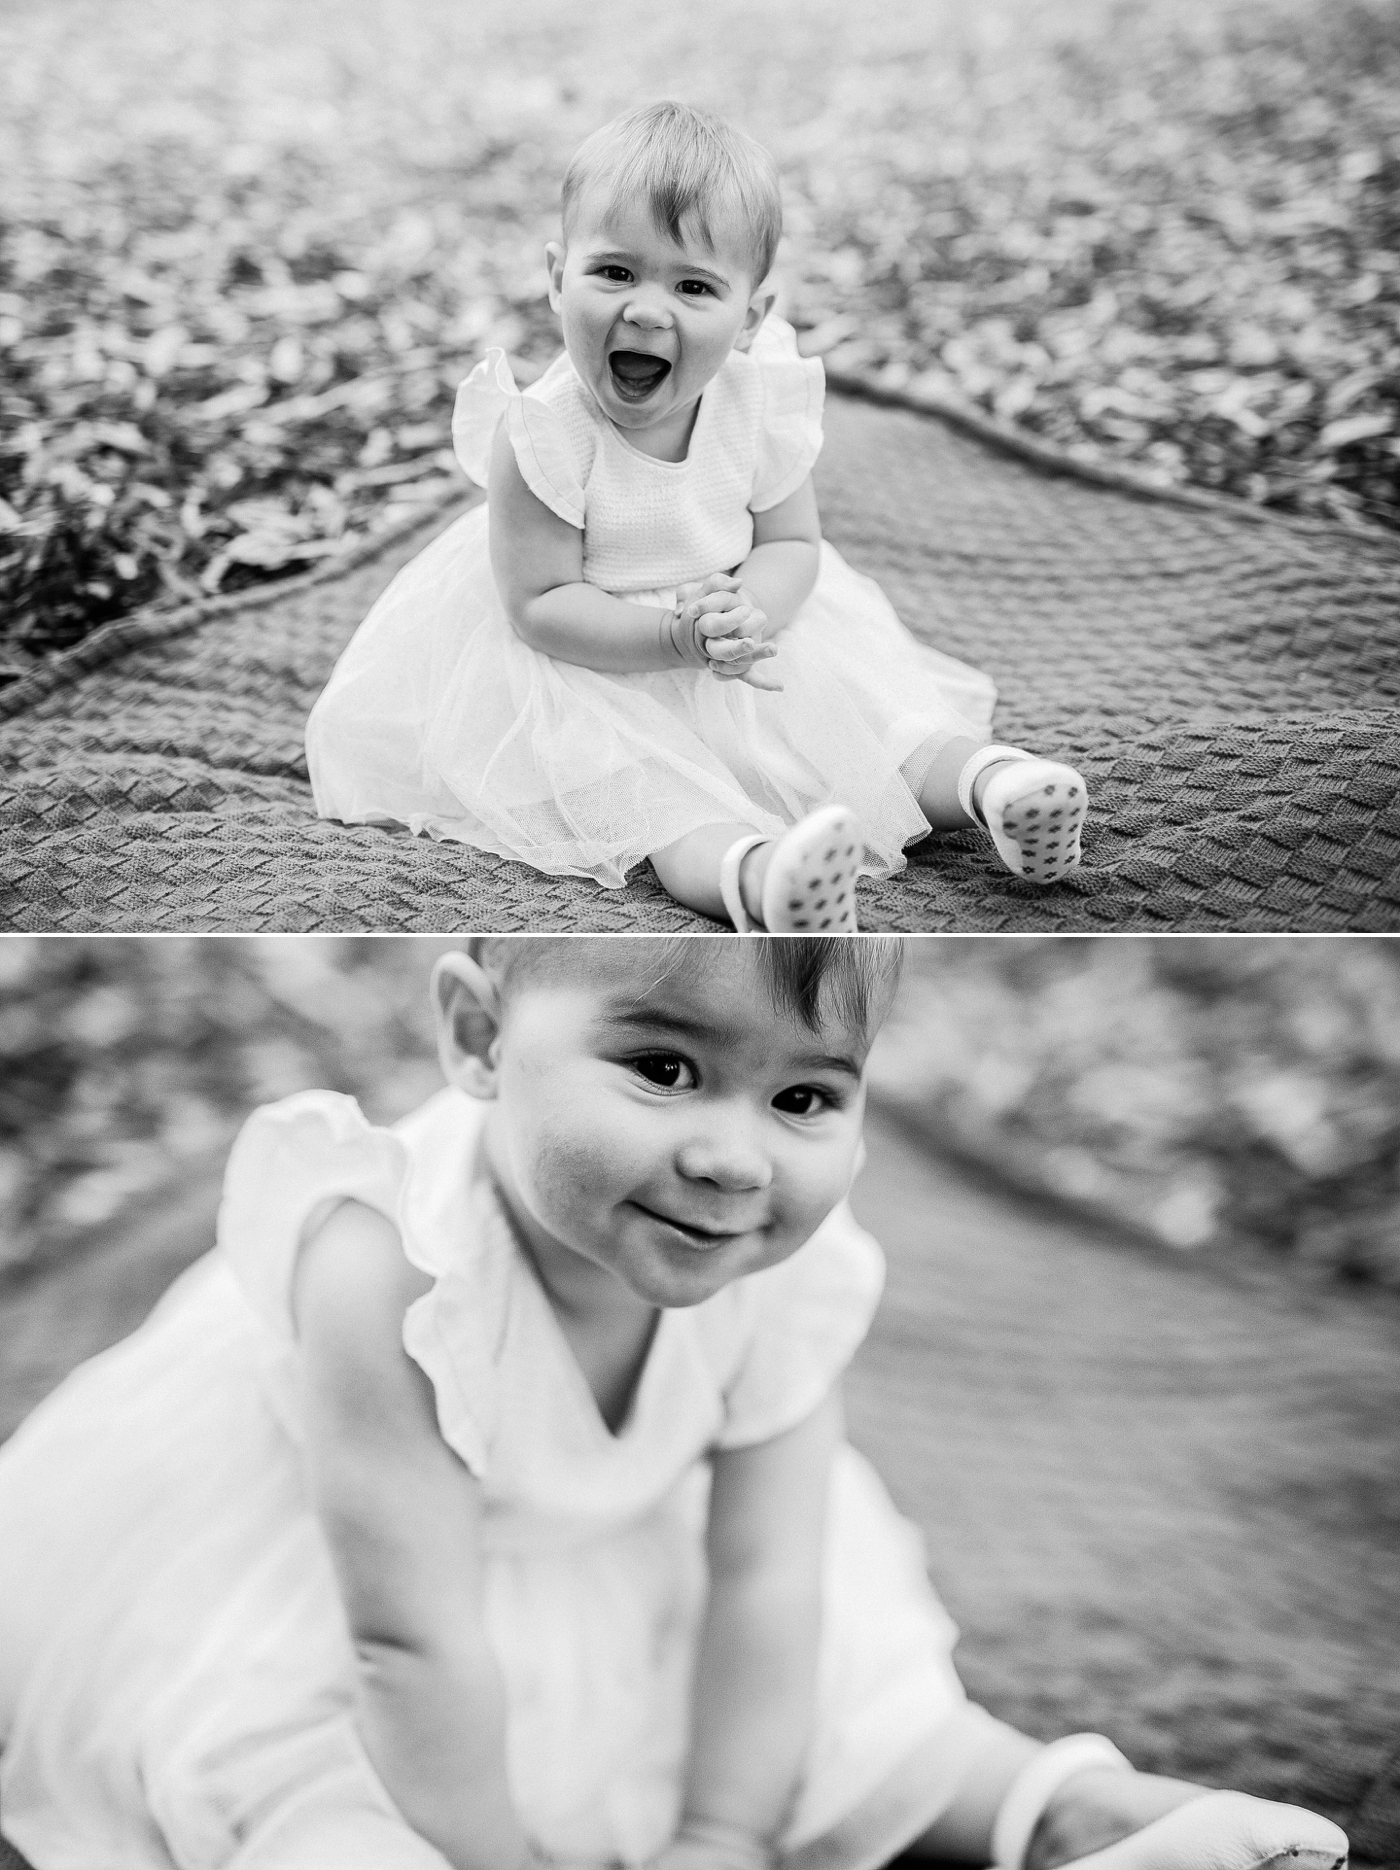 Tragakis Family - Natural family photography in Adelaide - www.katherineschultzphotography.com